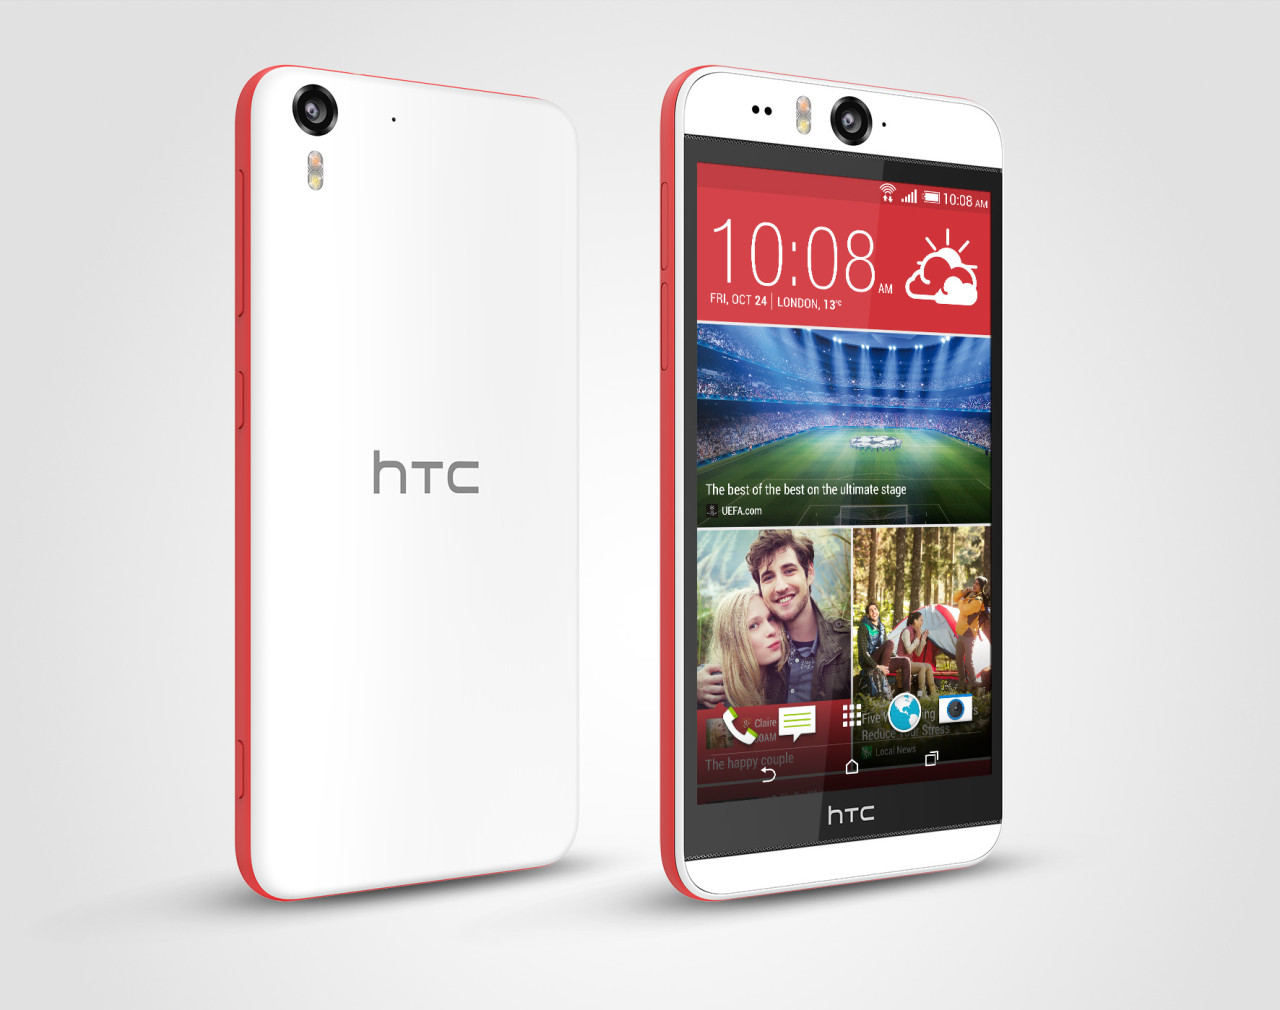 HTC-Desire-Eye-Matt-White-4-300dpi-1280x1010.jpg